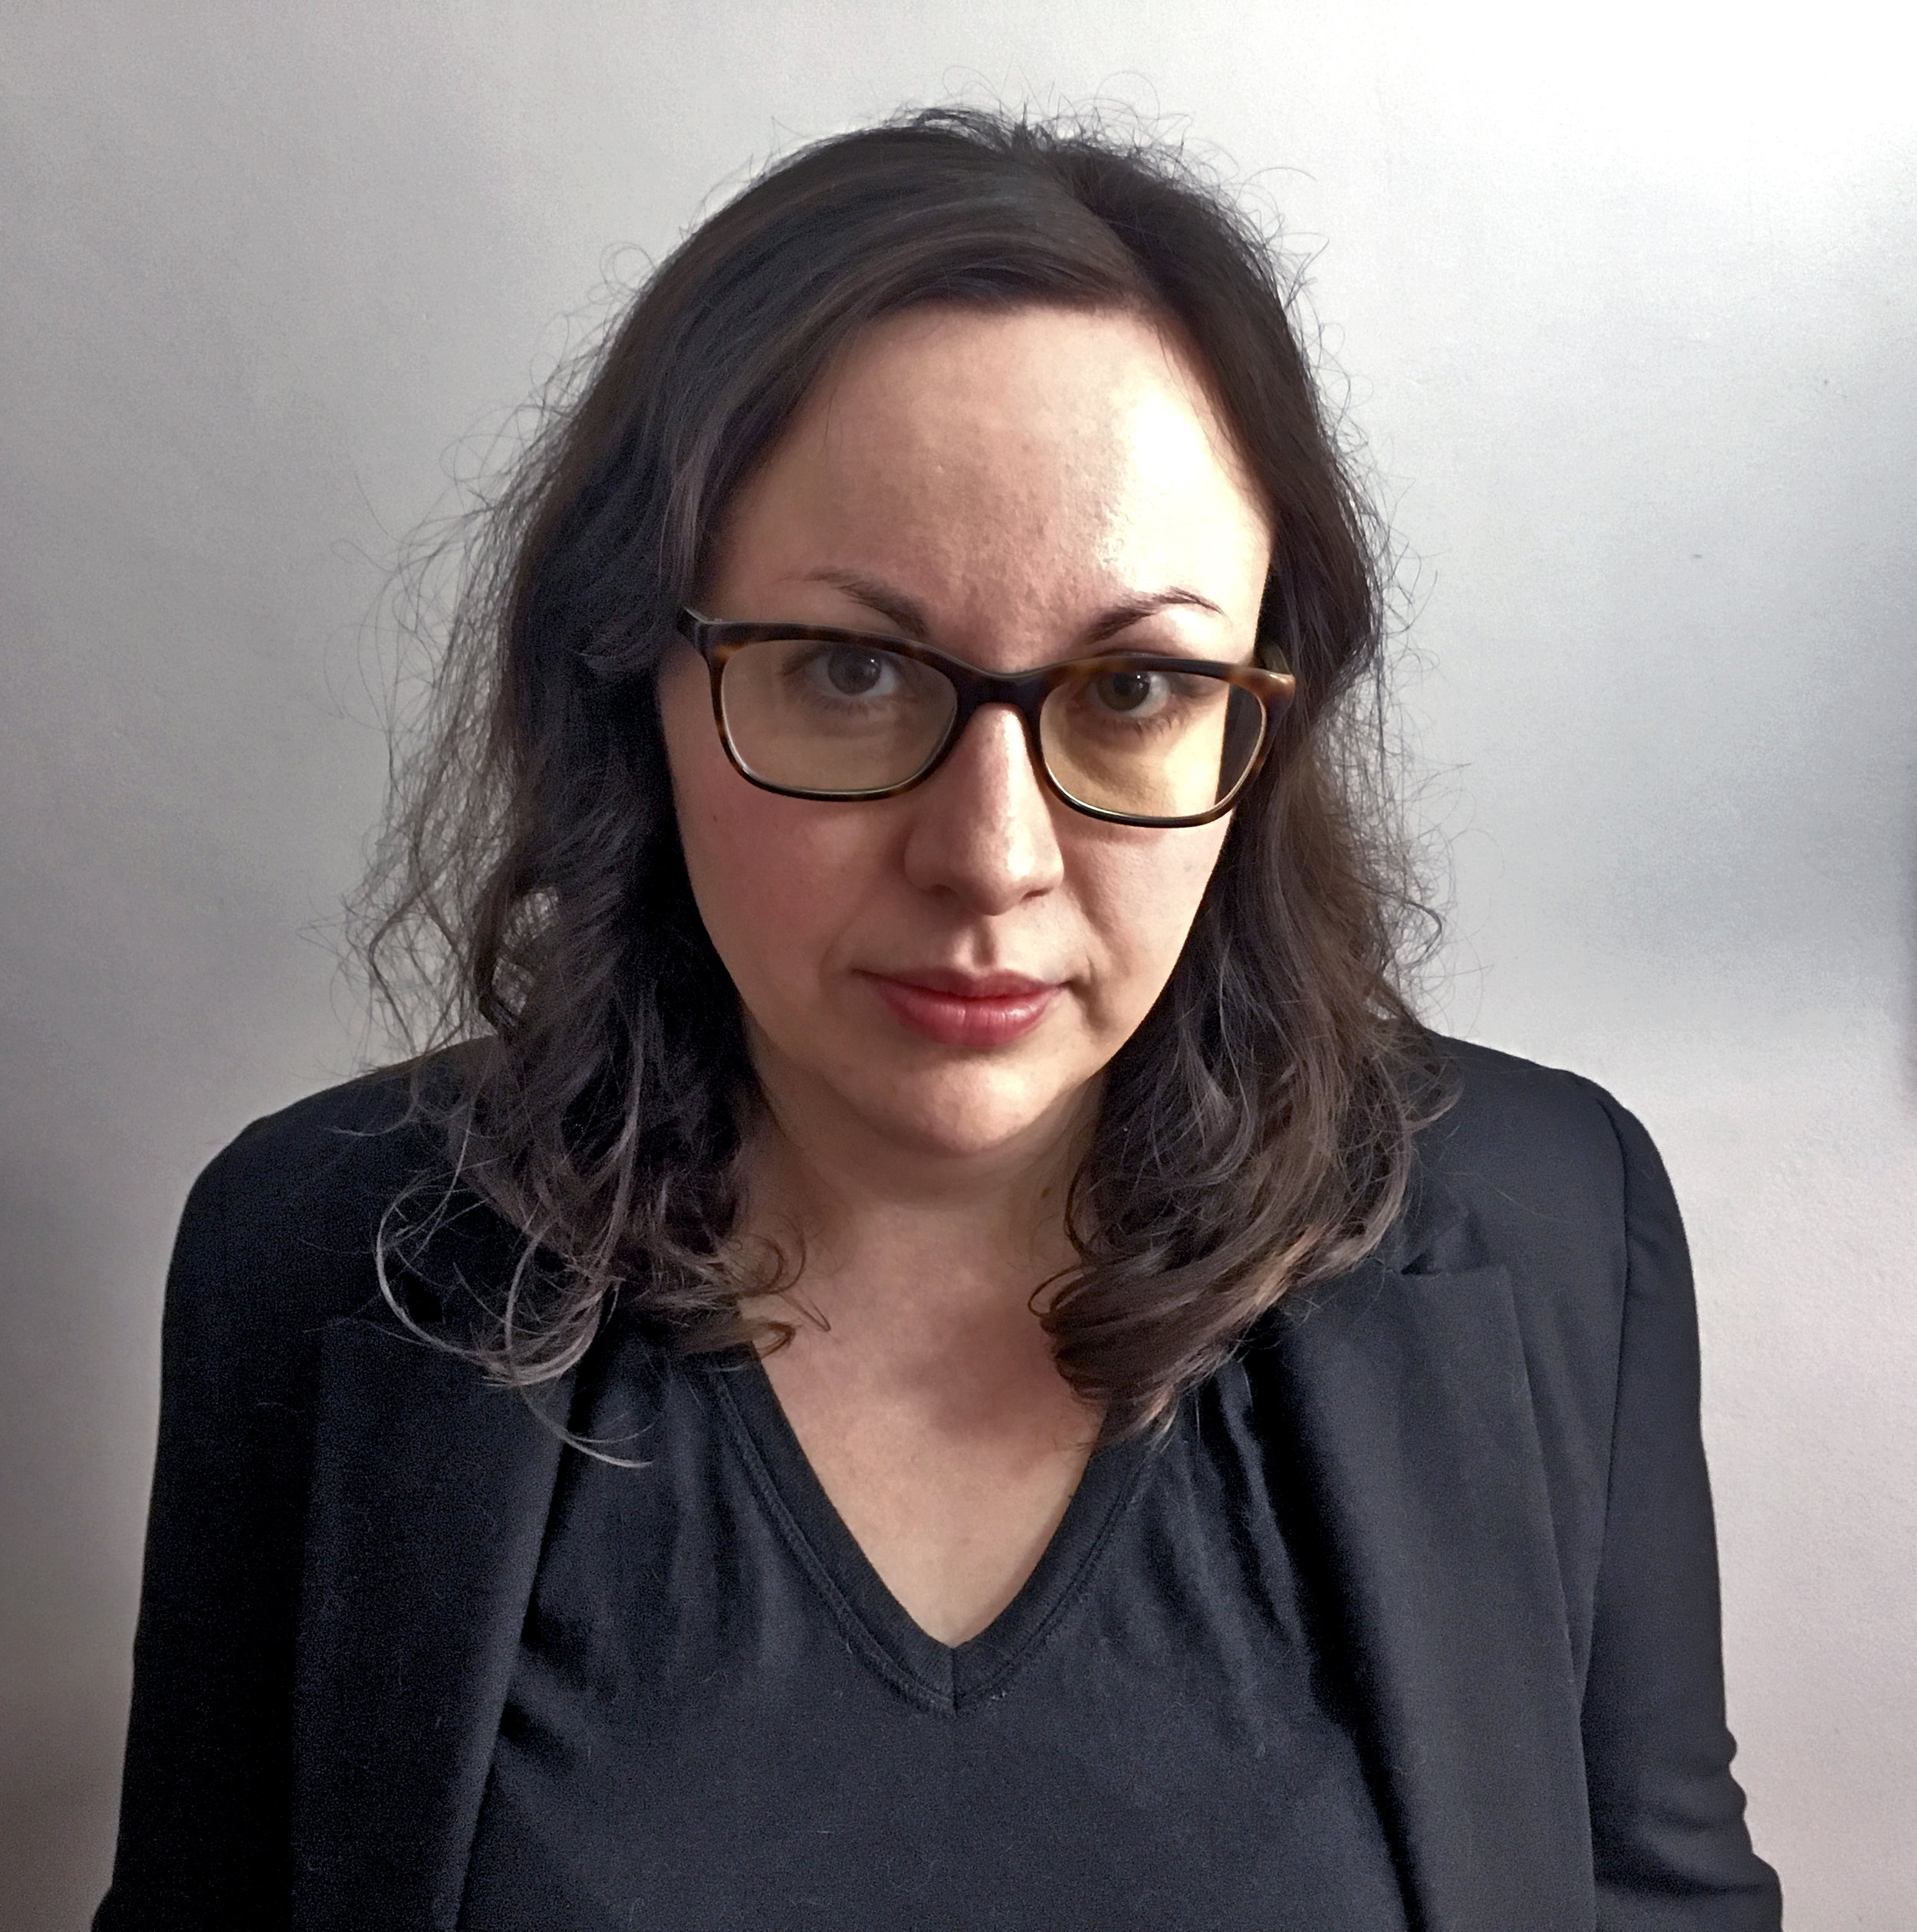 jill langlois  is a freelANCE JOURNALIST CURRENTLY BASED IN brazil. she is also helping the coalition compile resources for fellow journalists.  read full bio here .  View her work here . Mentorship Beat: Brazil